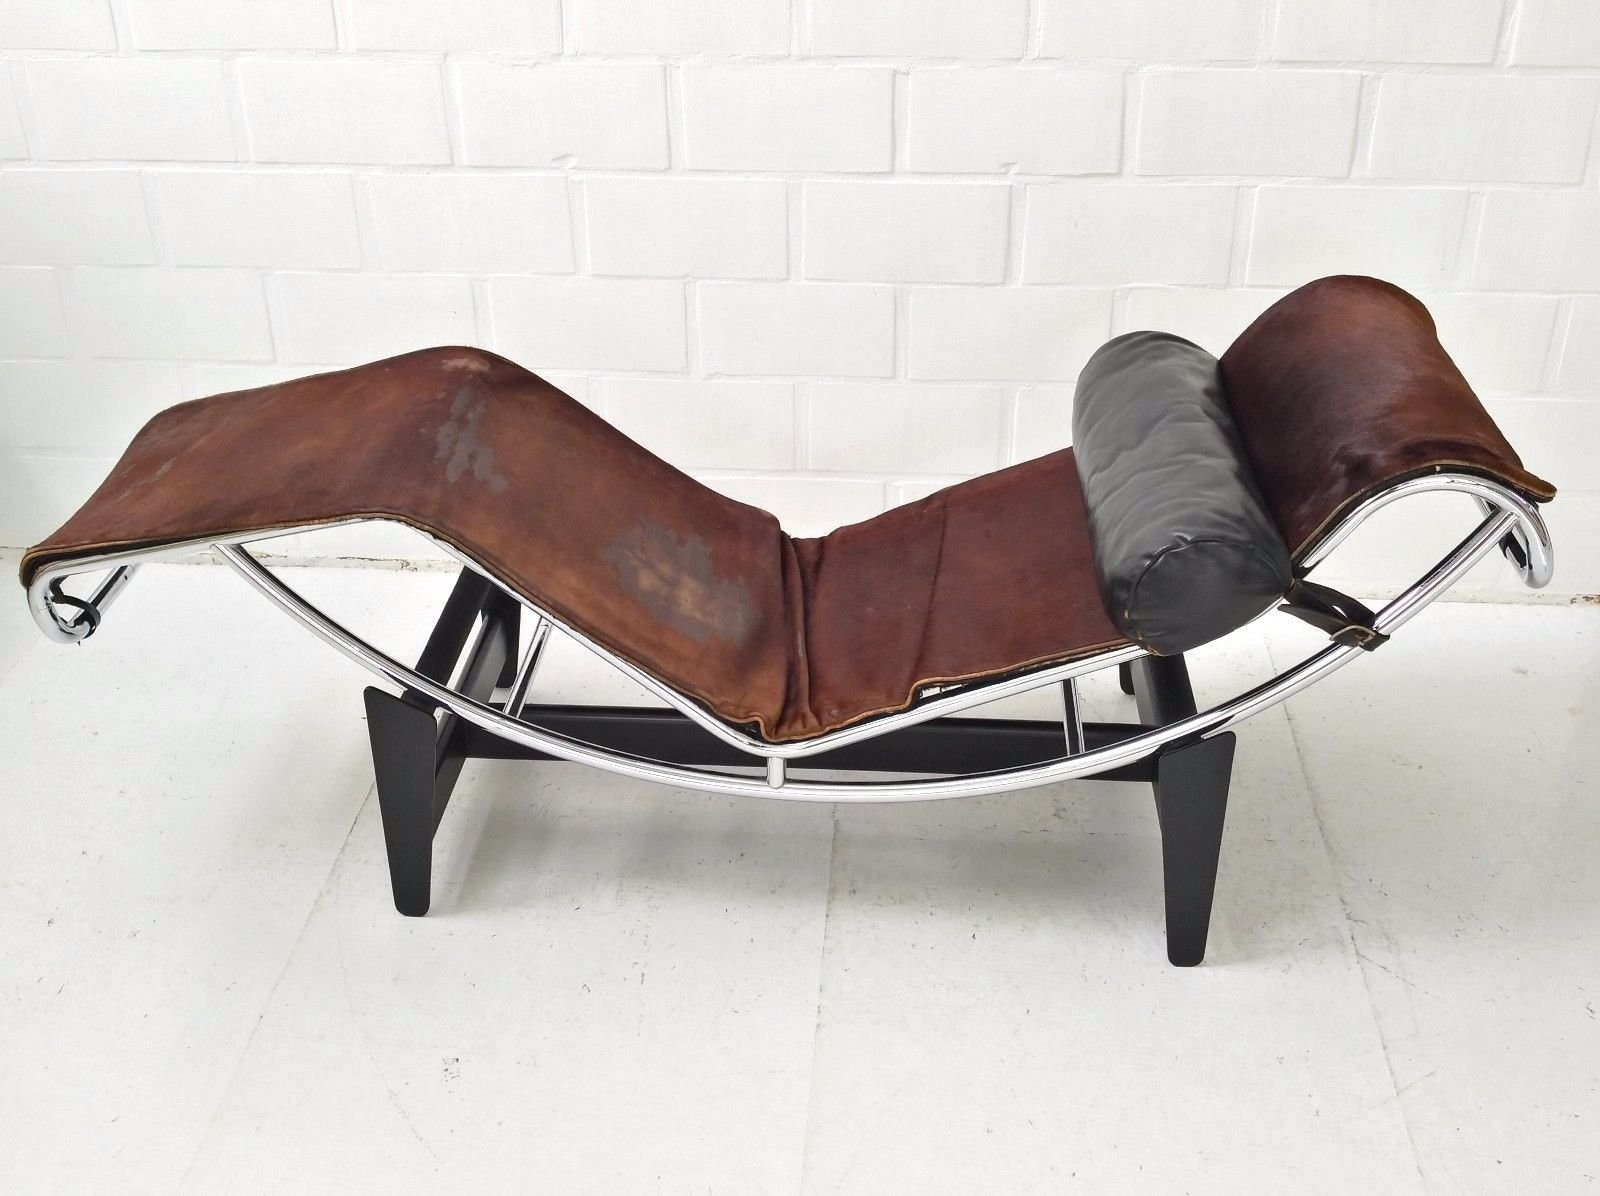 lc4 chaise longue by le corbusier charlotte perriand pierre jeanneret for cassina 1960s for. Black Bedroom Furniture Sets. Home Design Ideas